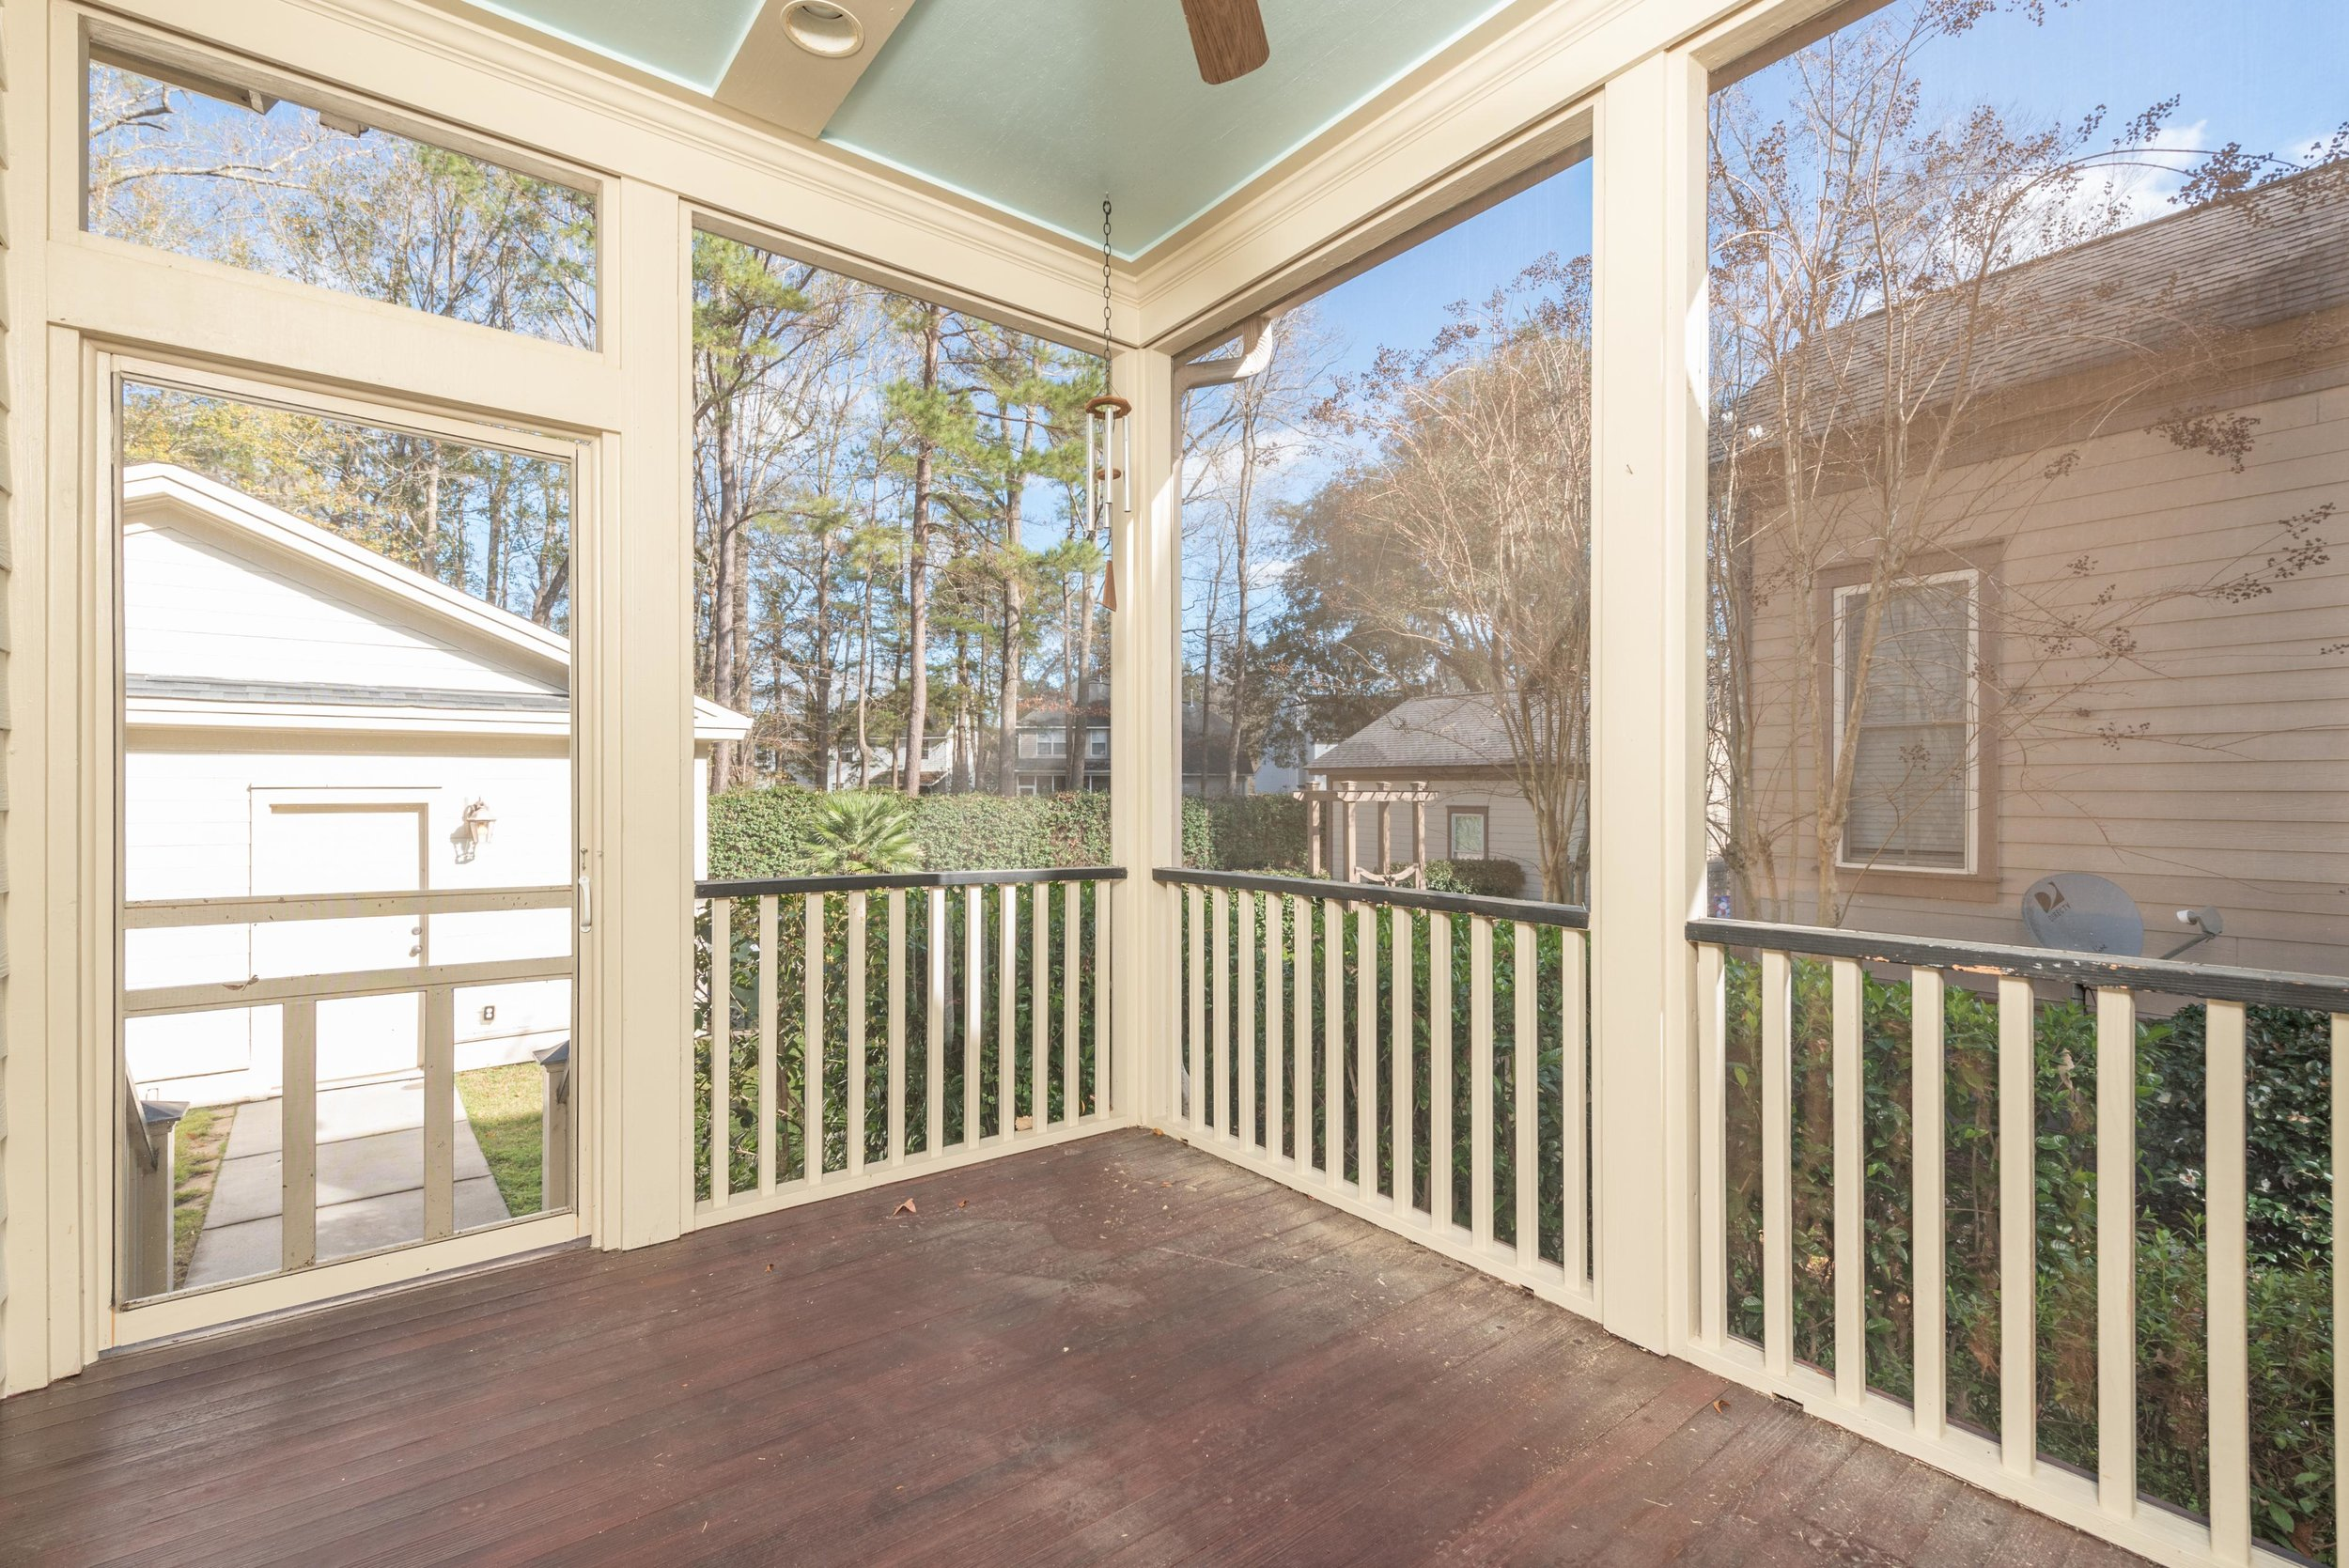 k4 Screened Porch.jpg